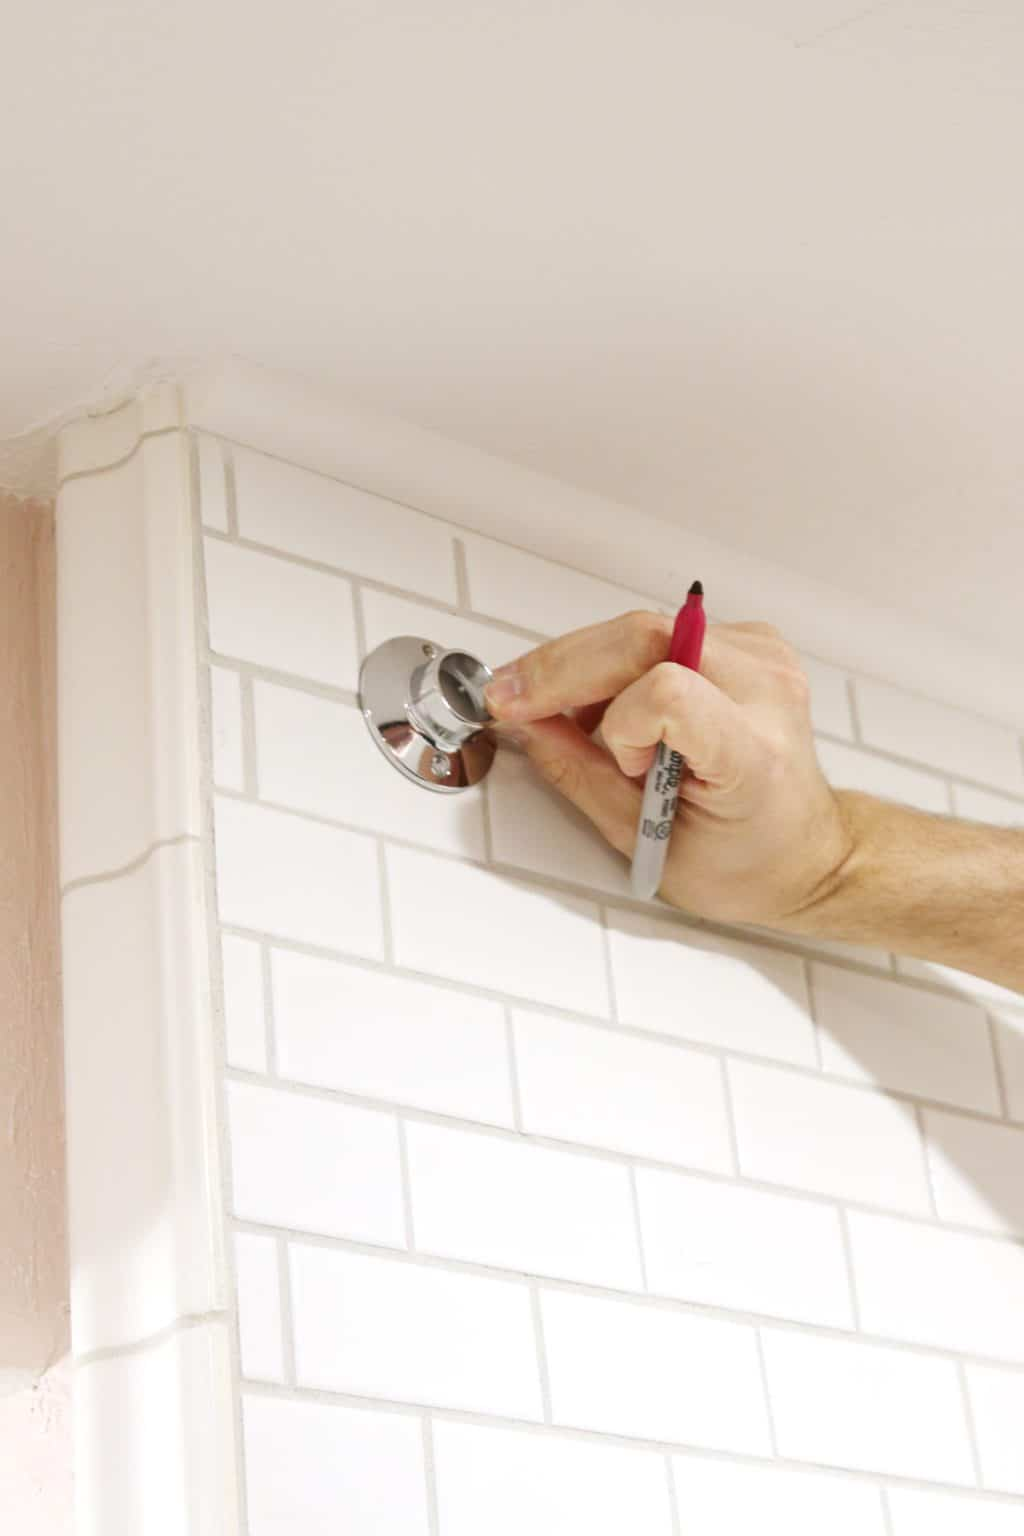 How To Drill Into Tile Hang A Shower